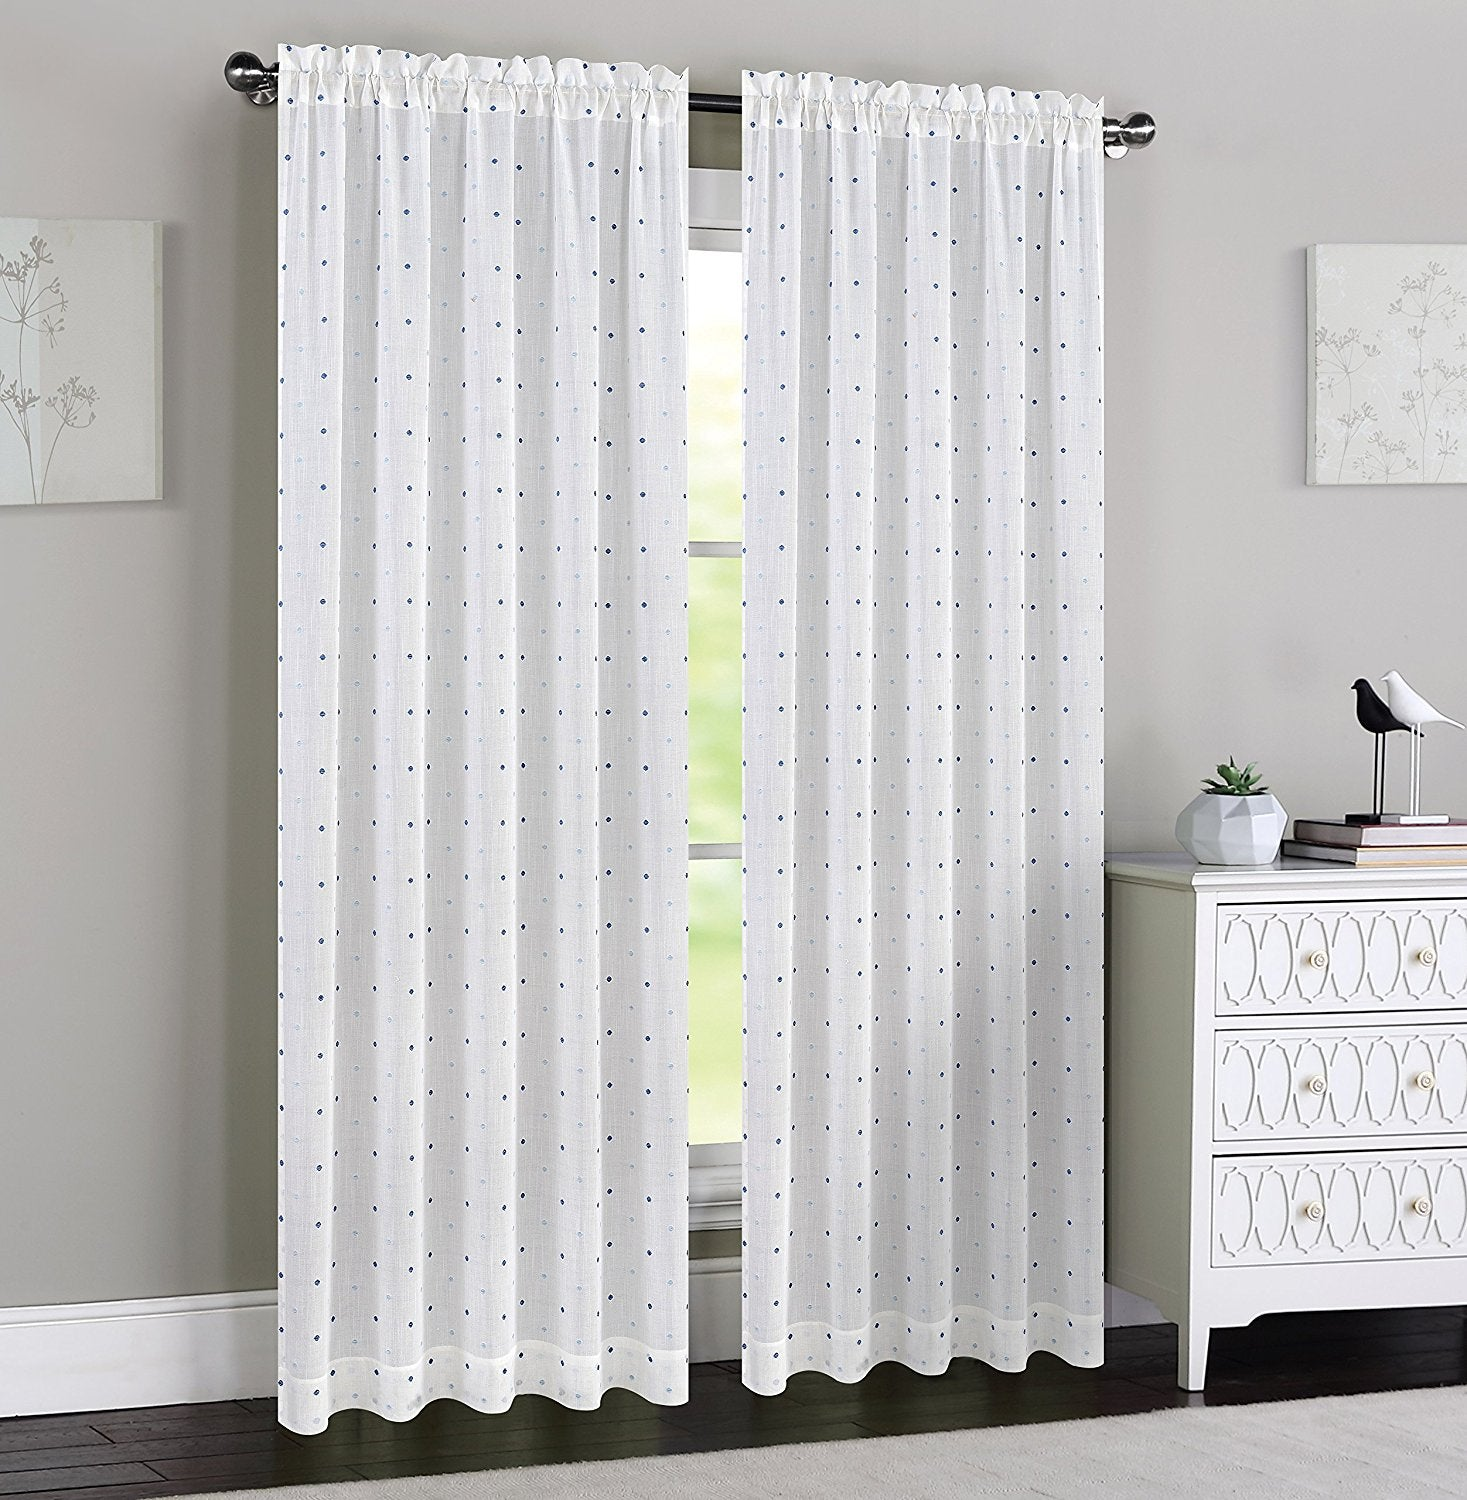 Madeline Set of 2 Sheer Curtain Panels - 4 Colors